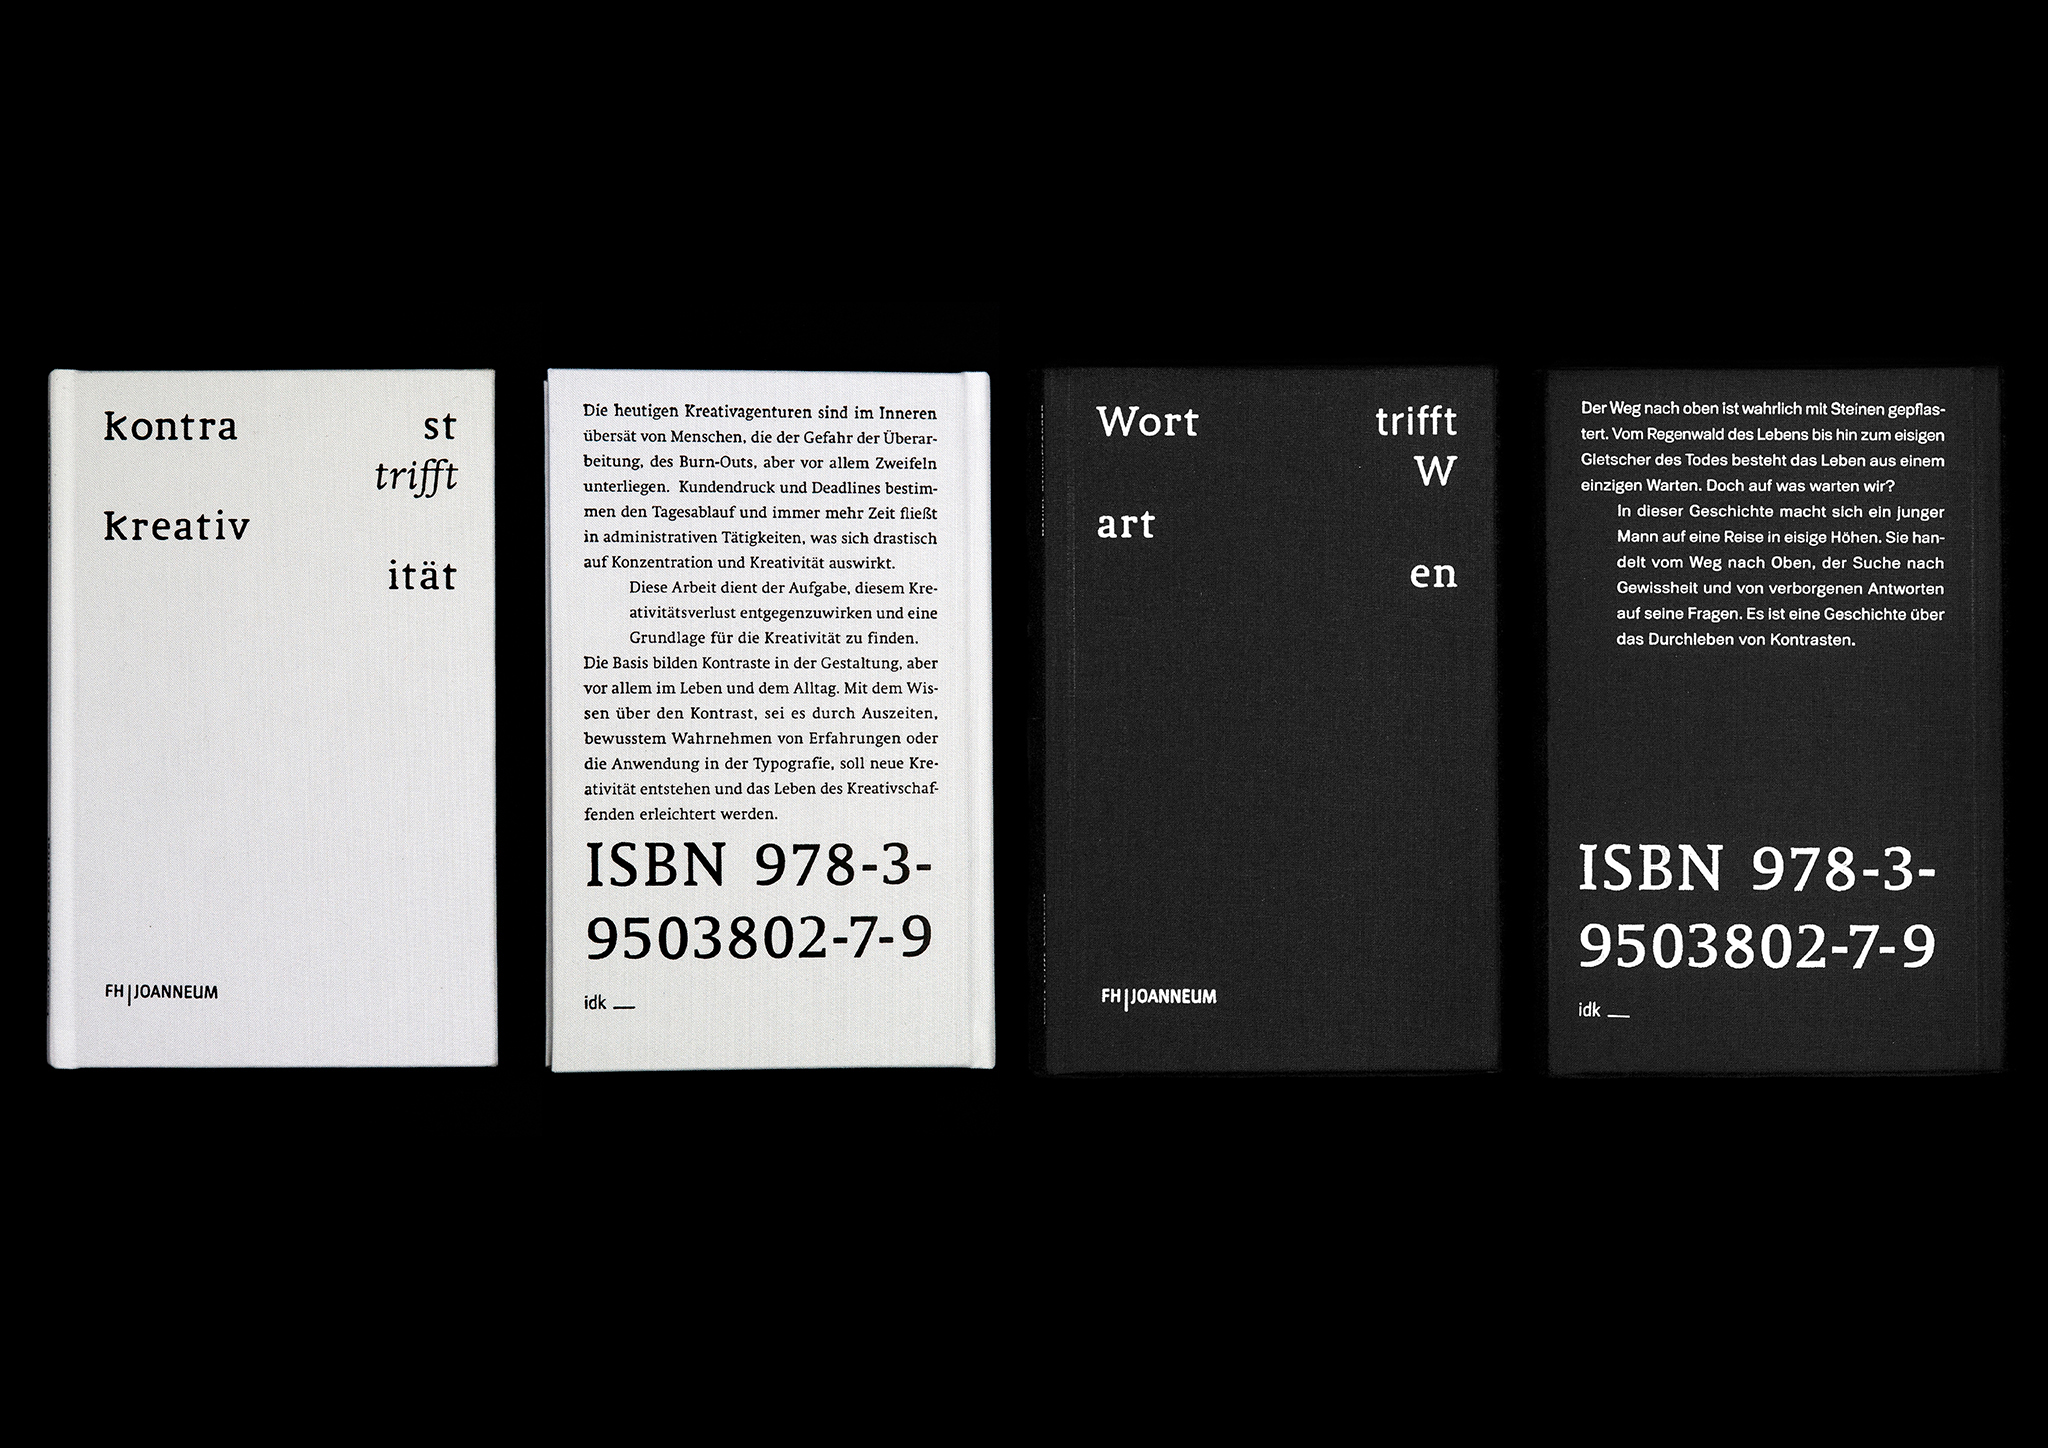 Daniel-Stuhlpfarrer_Visual-Communication_Graphic-Design_Kontrast-trifft-Kreativitaet-Wort-trifft-Warten-1-Books-Cover